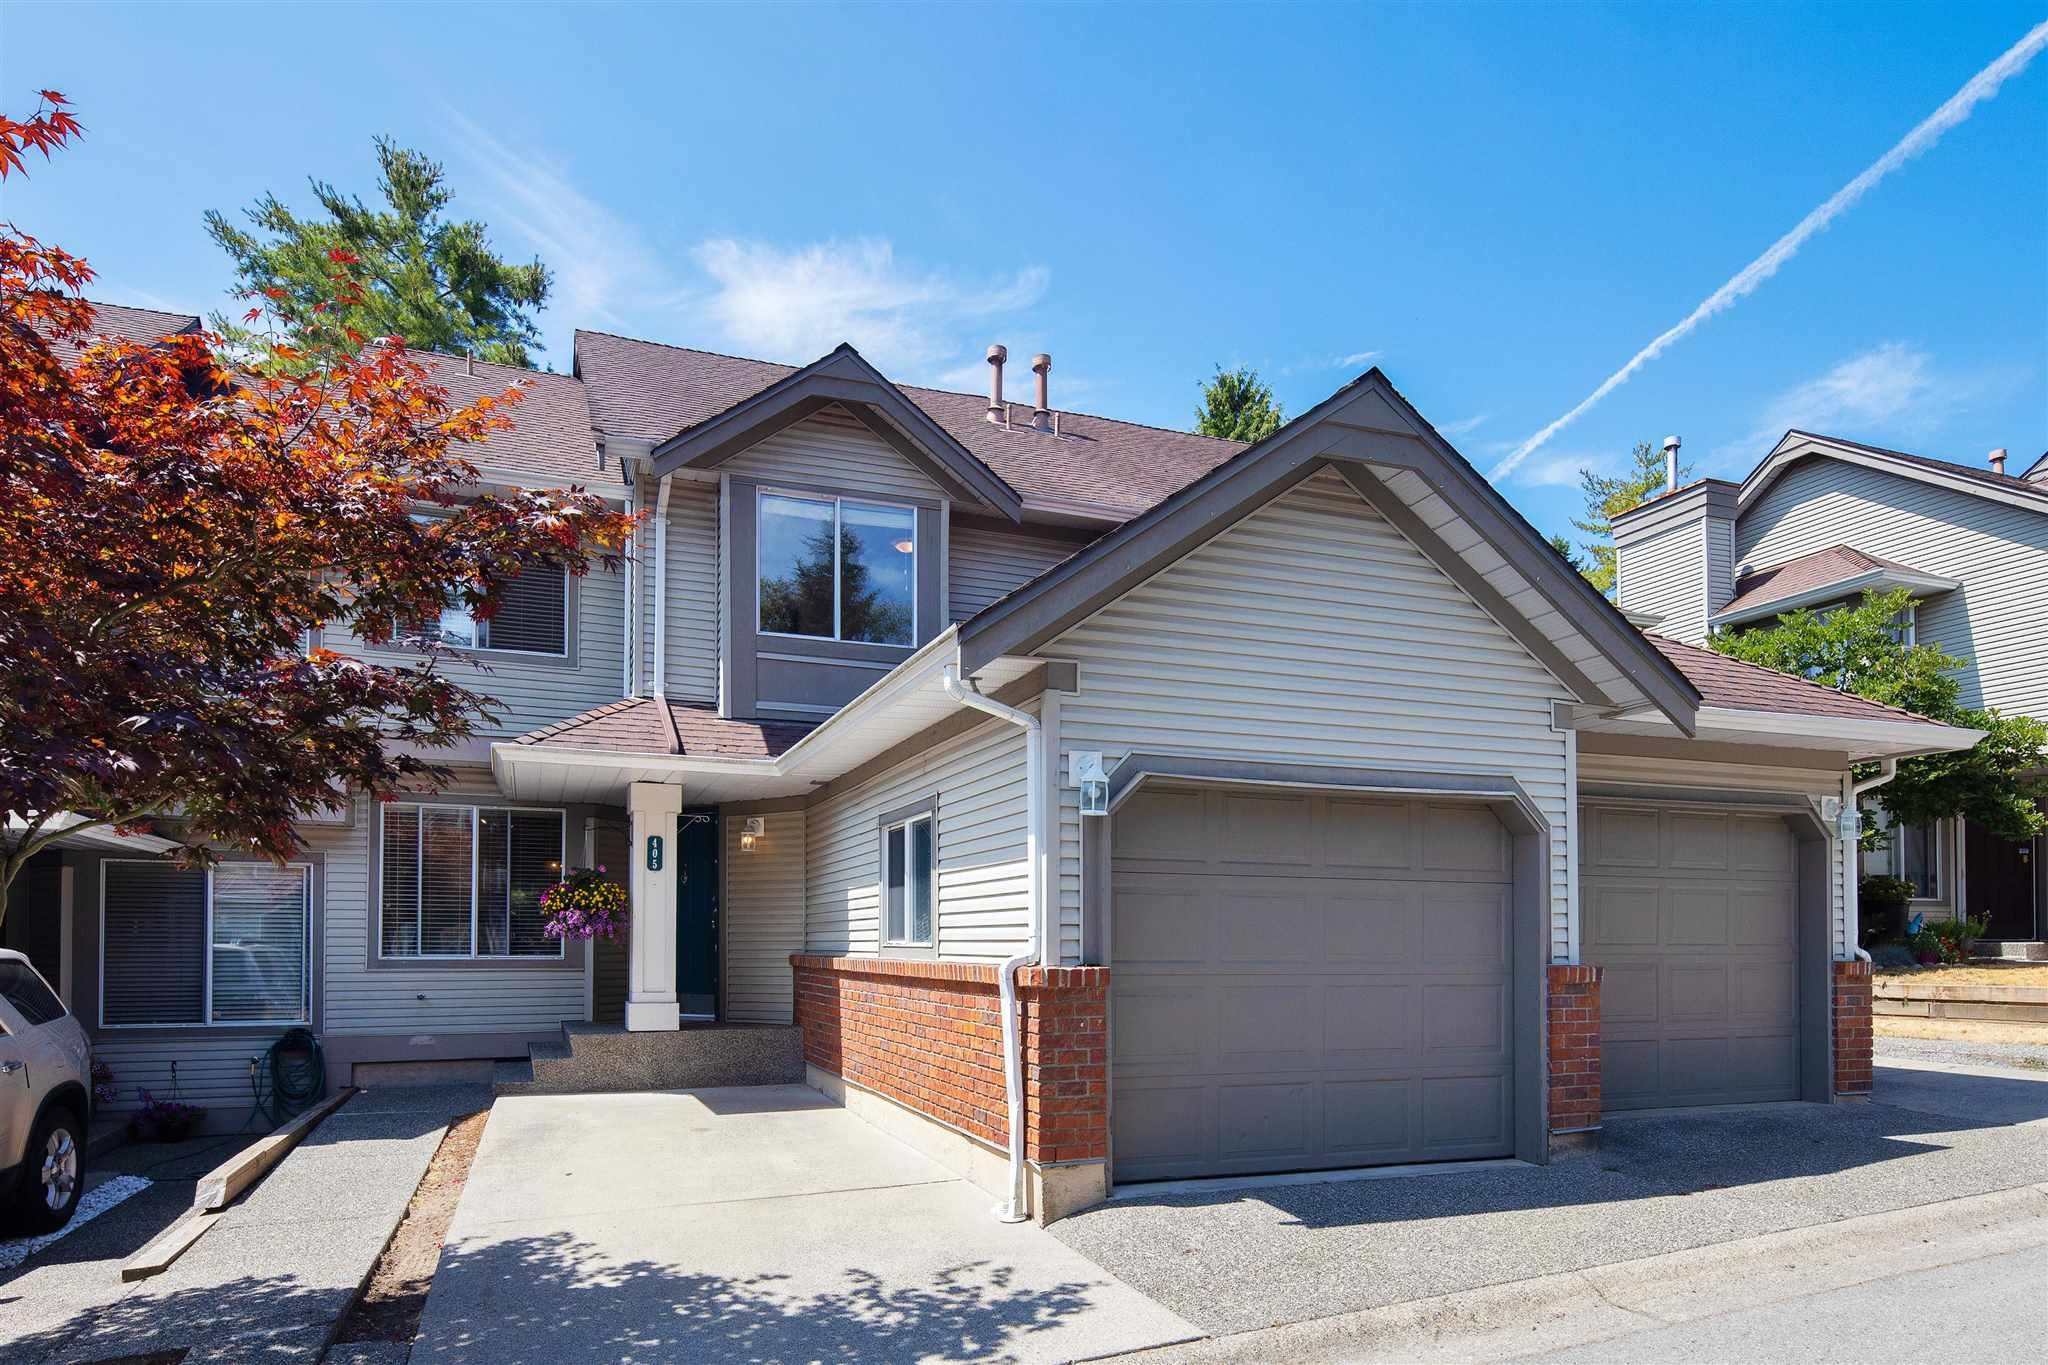 """Main Photo: 405 13900 HYLAND Road in Surrey: East Newton Townhouse for sale in """"HYLAND GROVE"""" : MLS®# R2605860"""